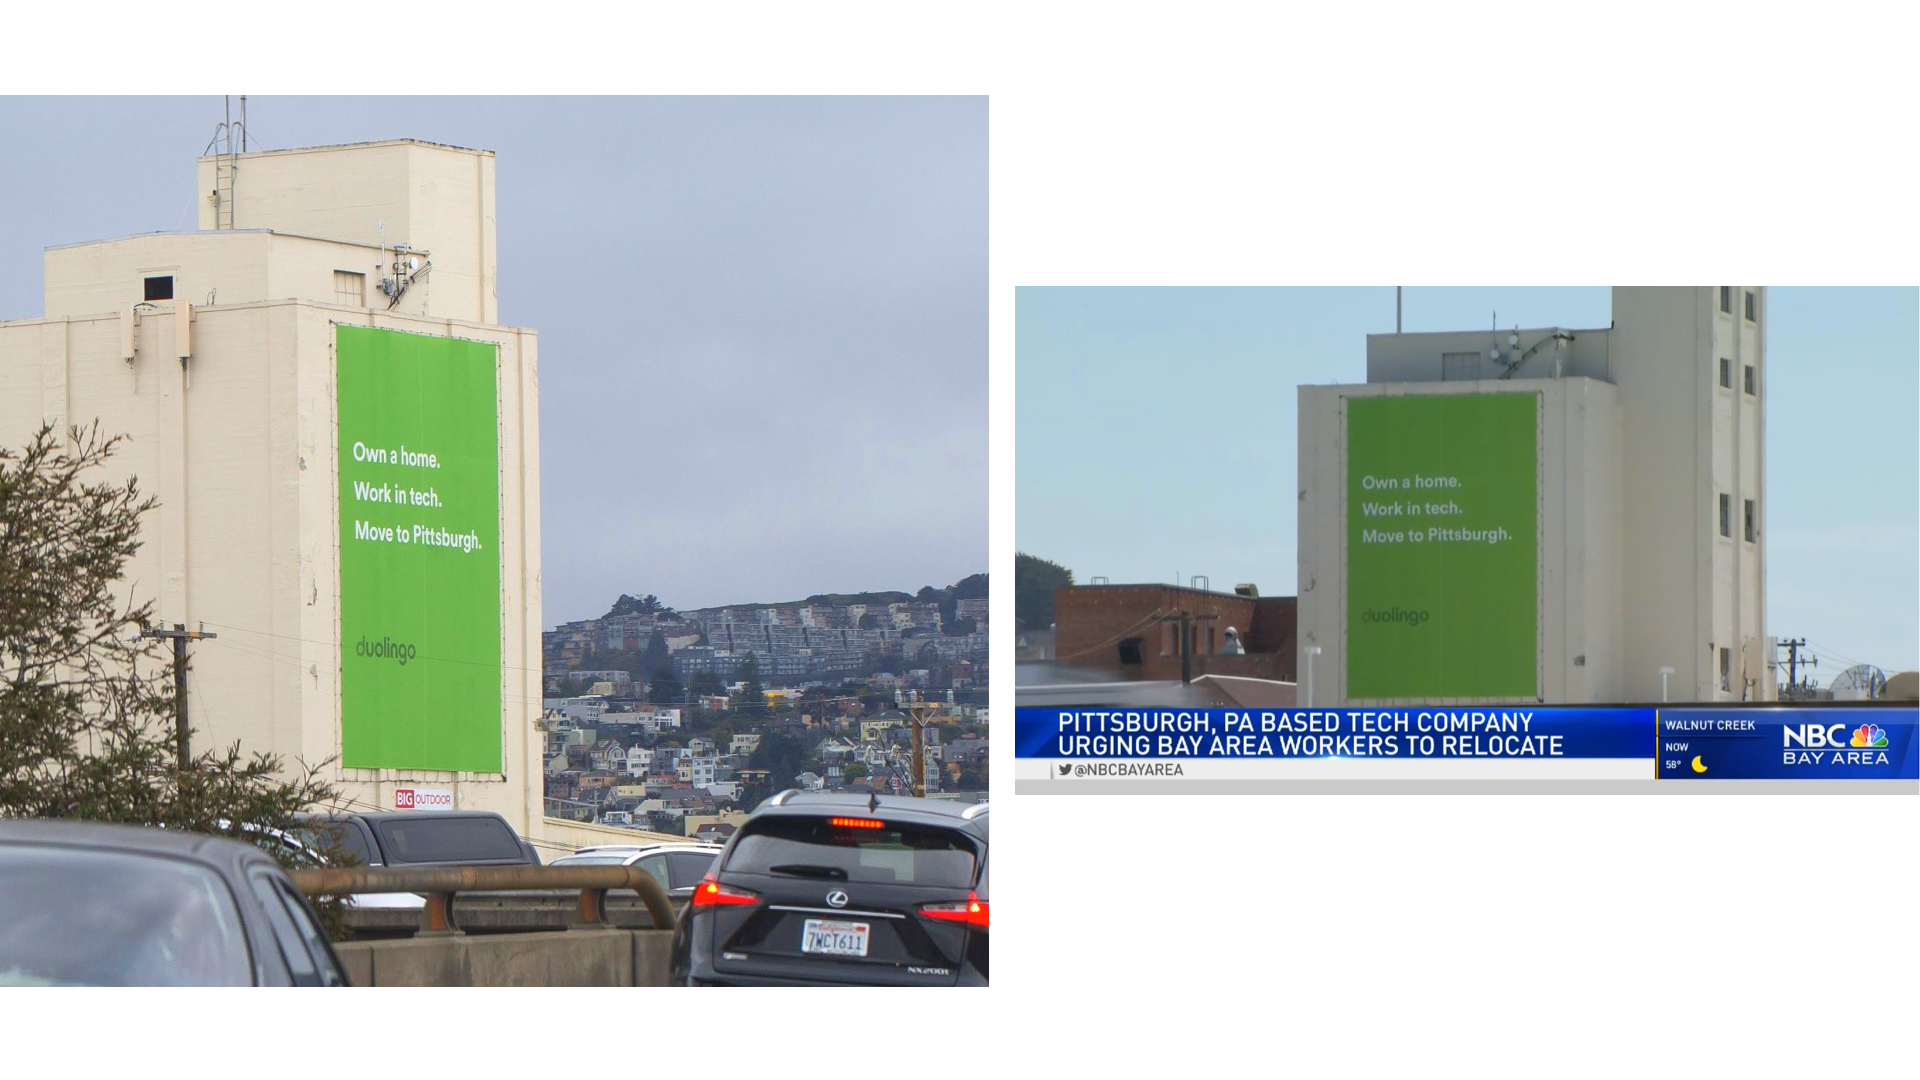 Duolingo Billboard Johnson Banks